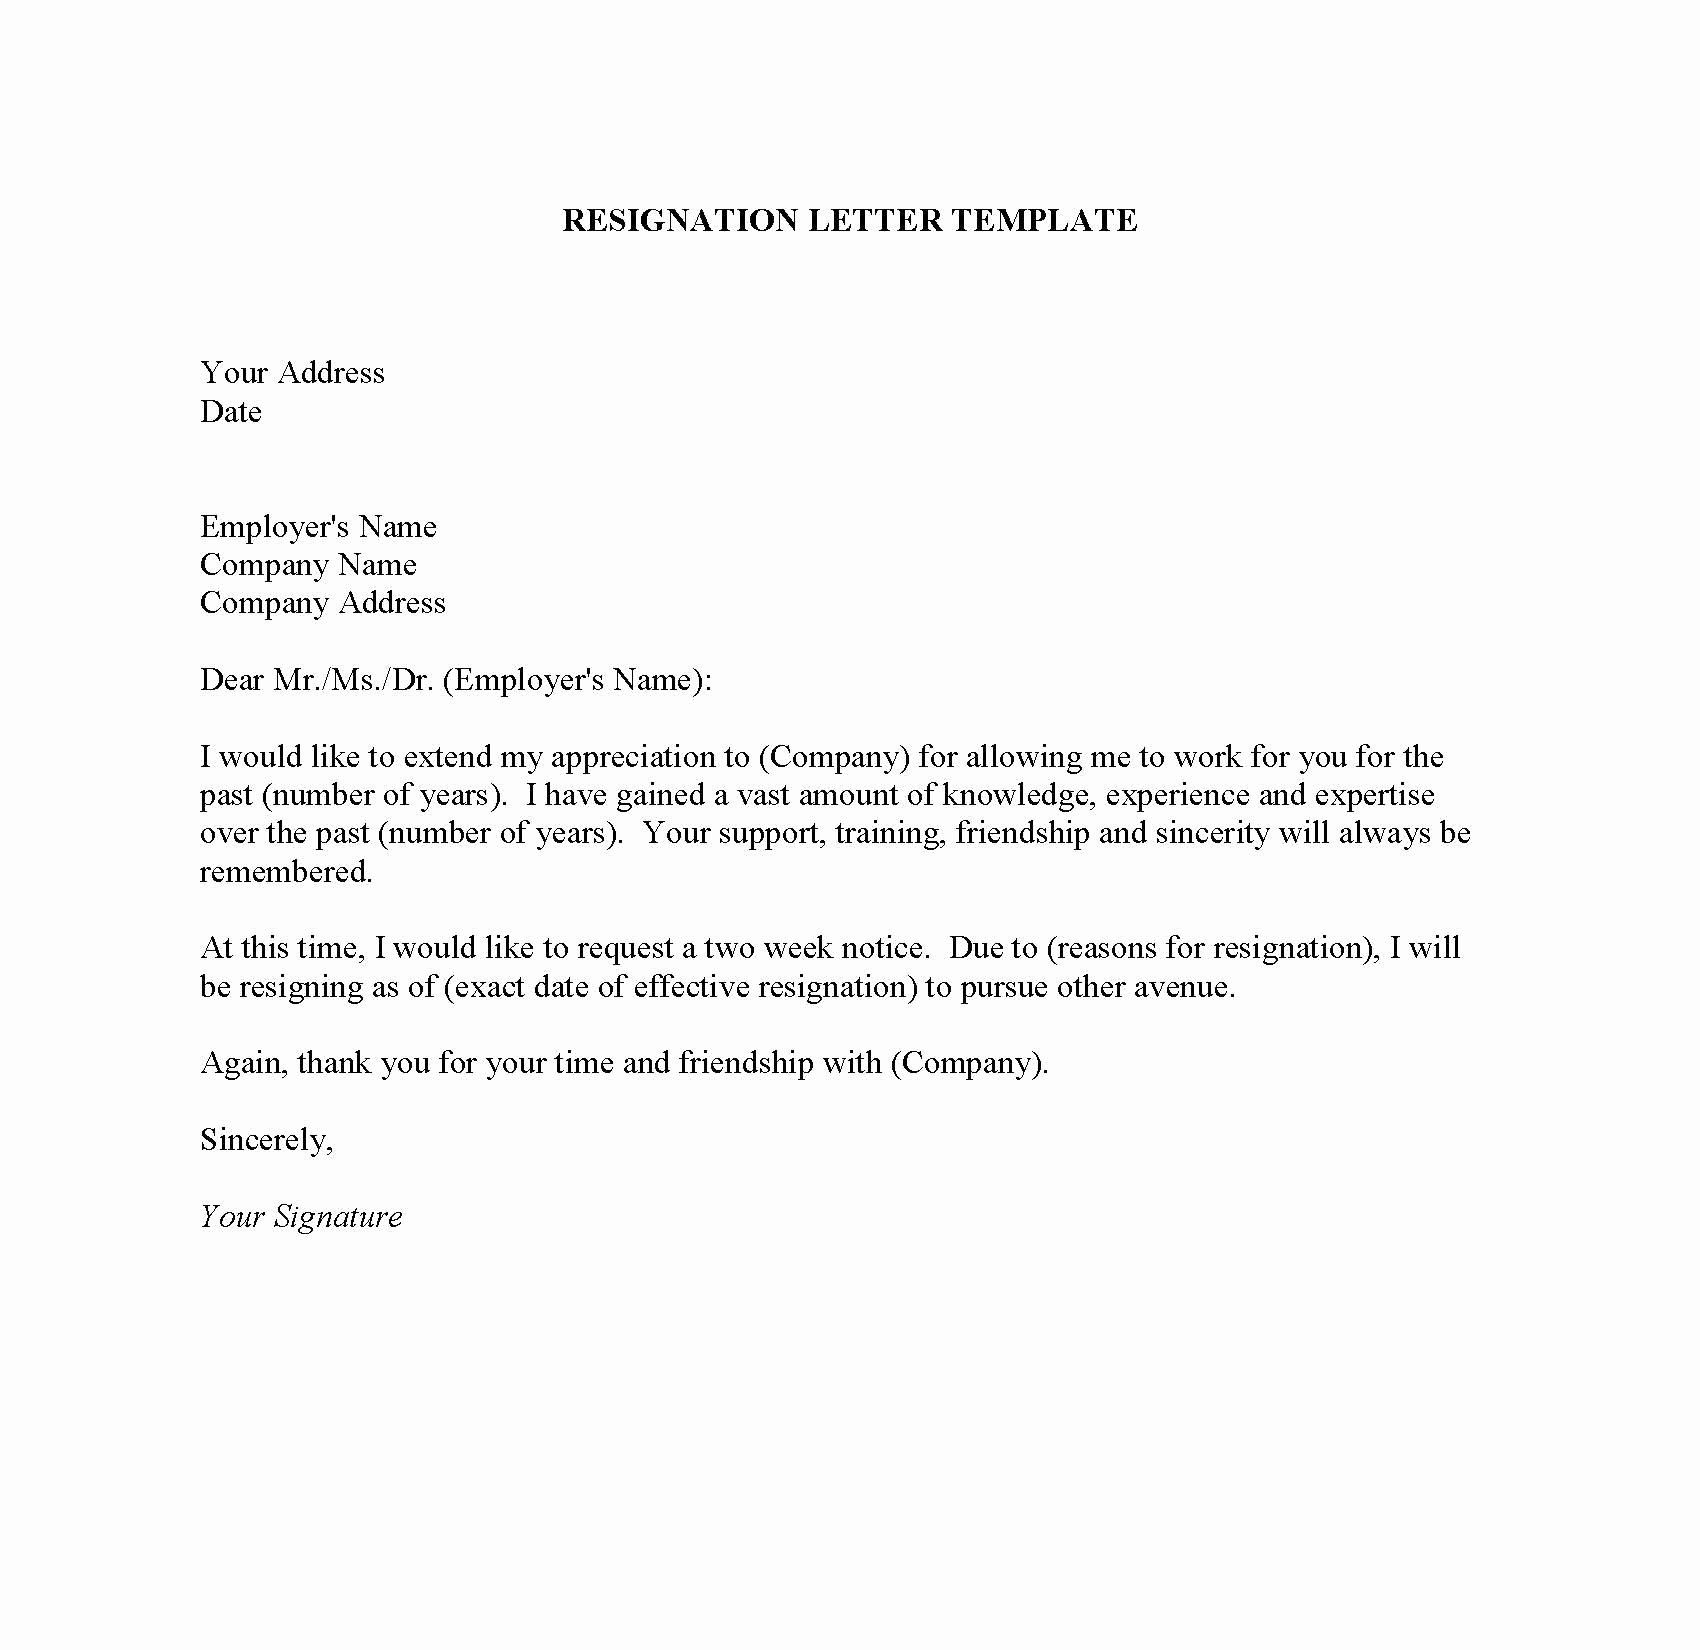 Voluntary Resignation Form Template Unique Resignation Letter Samples Download Pdf Doc F Resignation Letter Resignation Letter Sample Resignation Letter Format